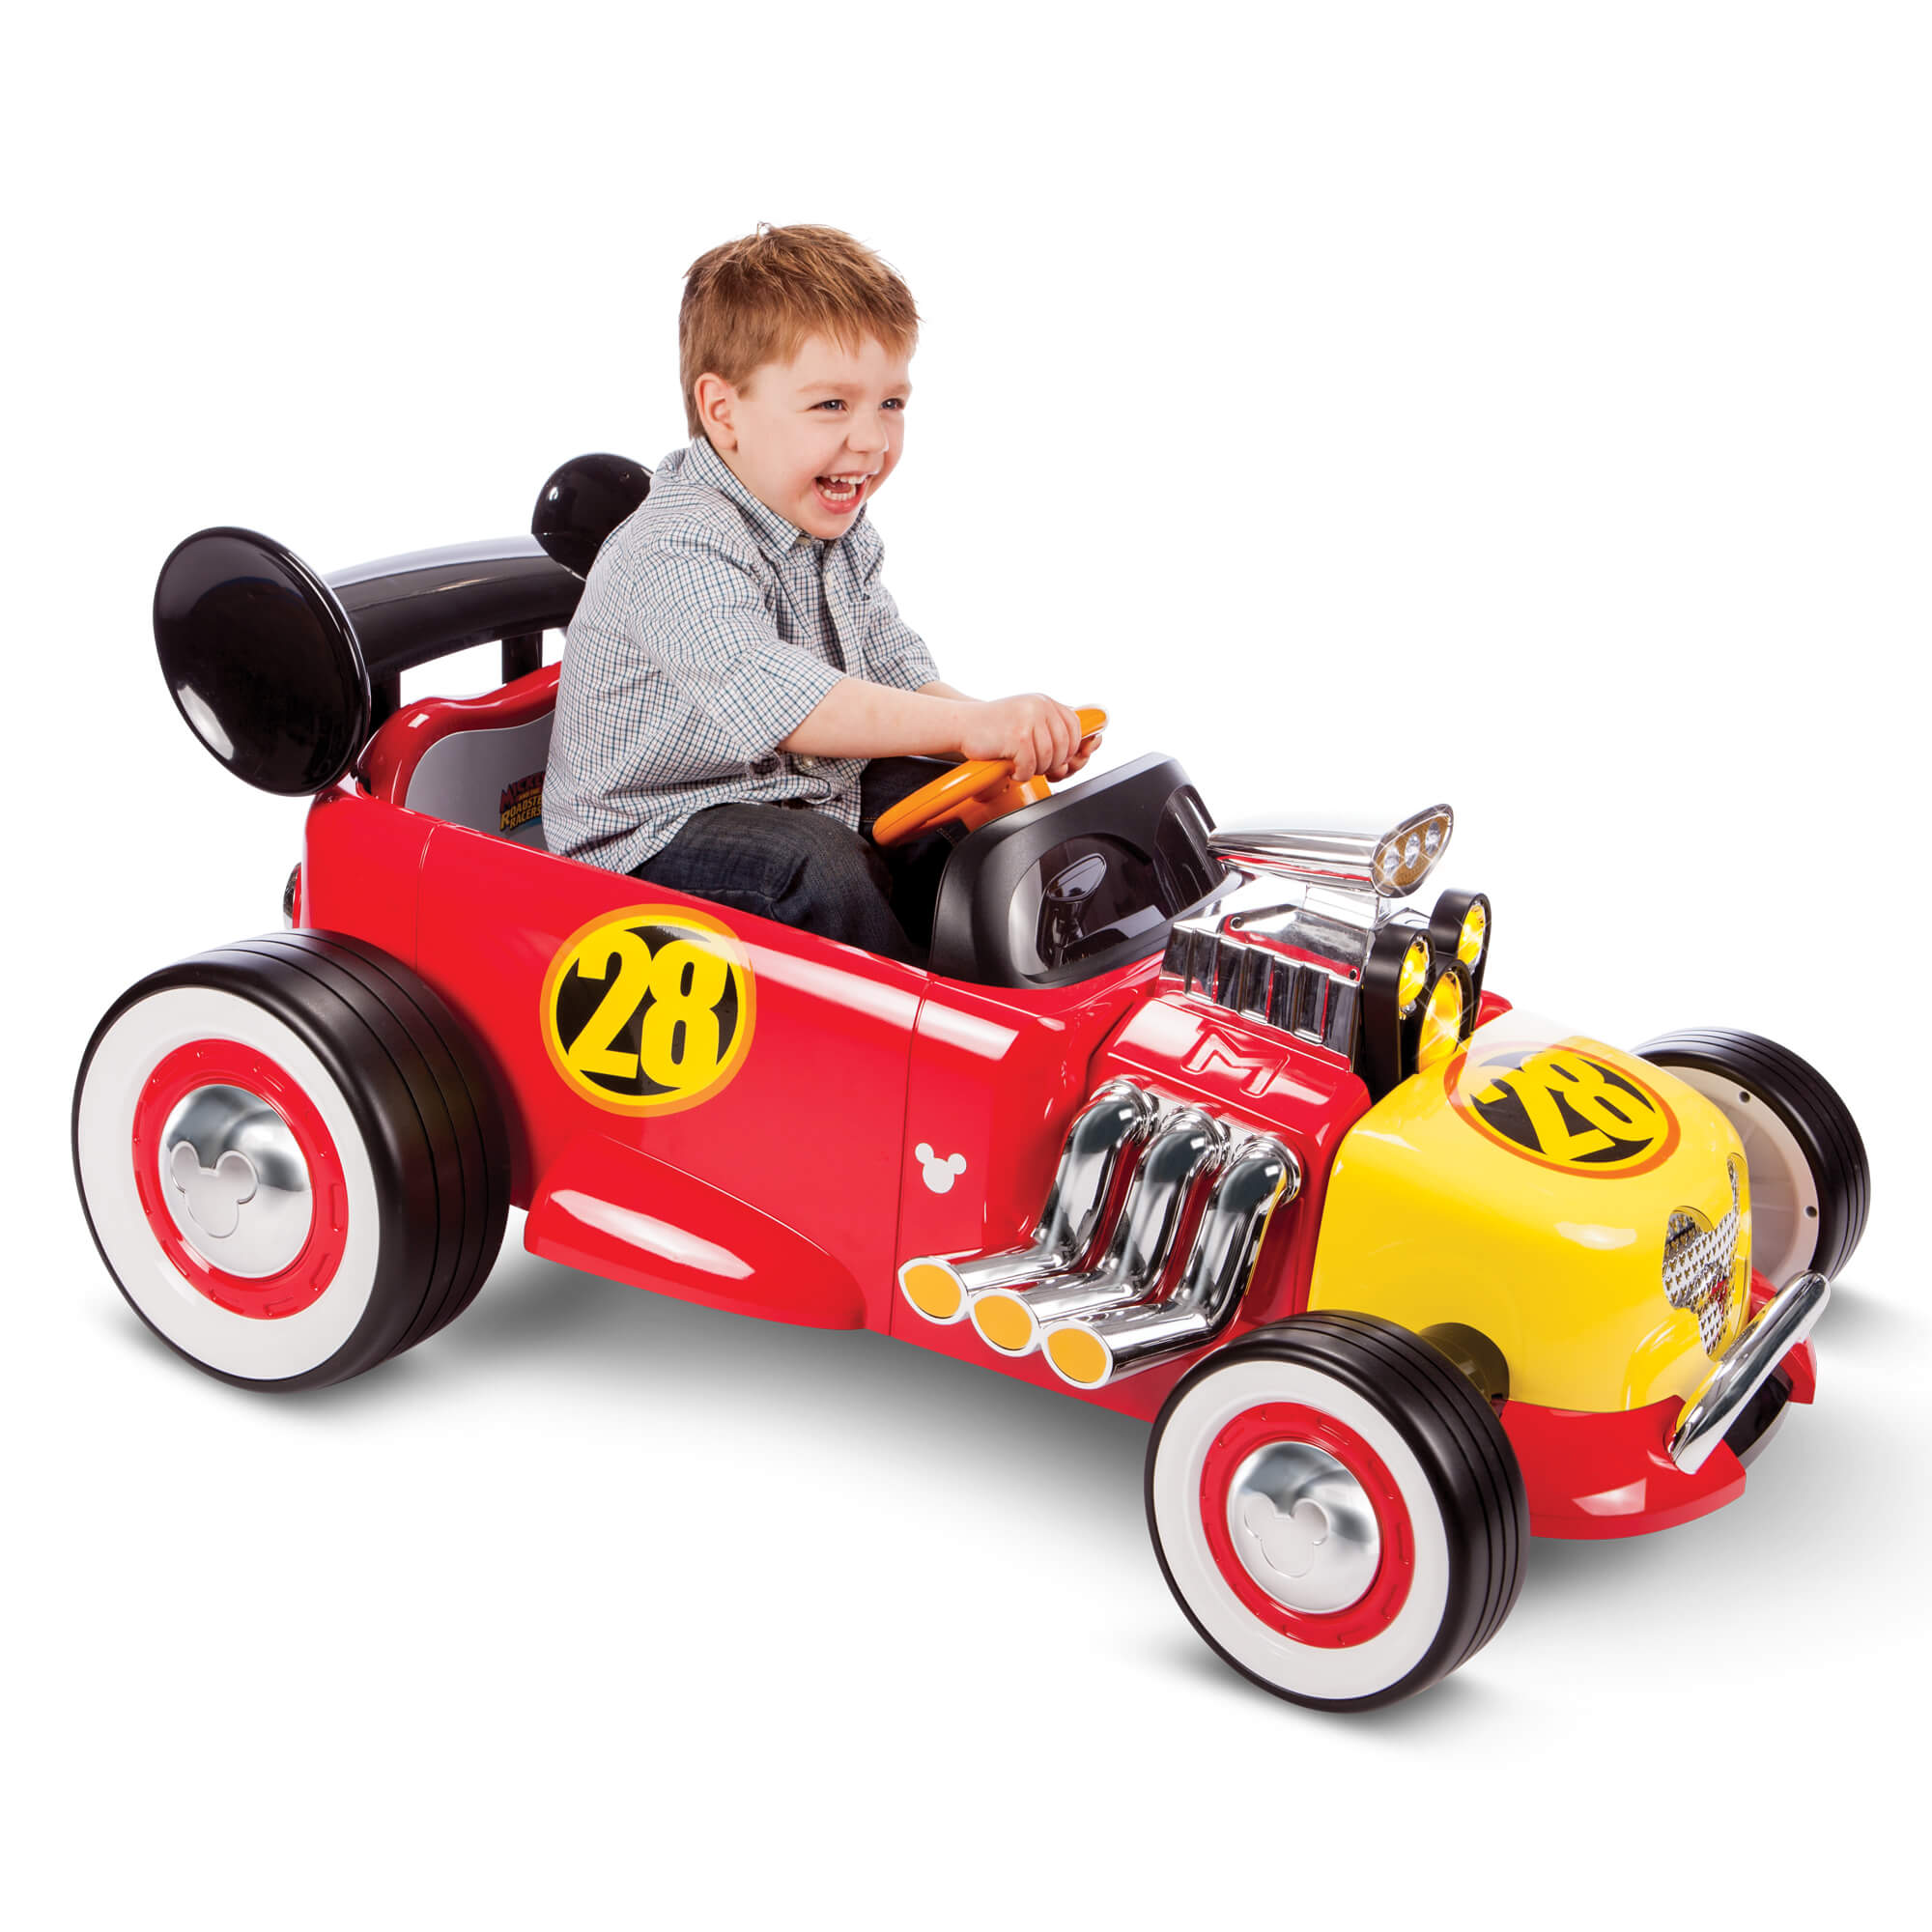 Disney Mickey Roadster Racer 6-Volt Battery-Powered Ride On by Huffy by Huffy